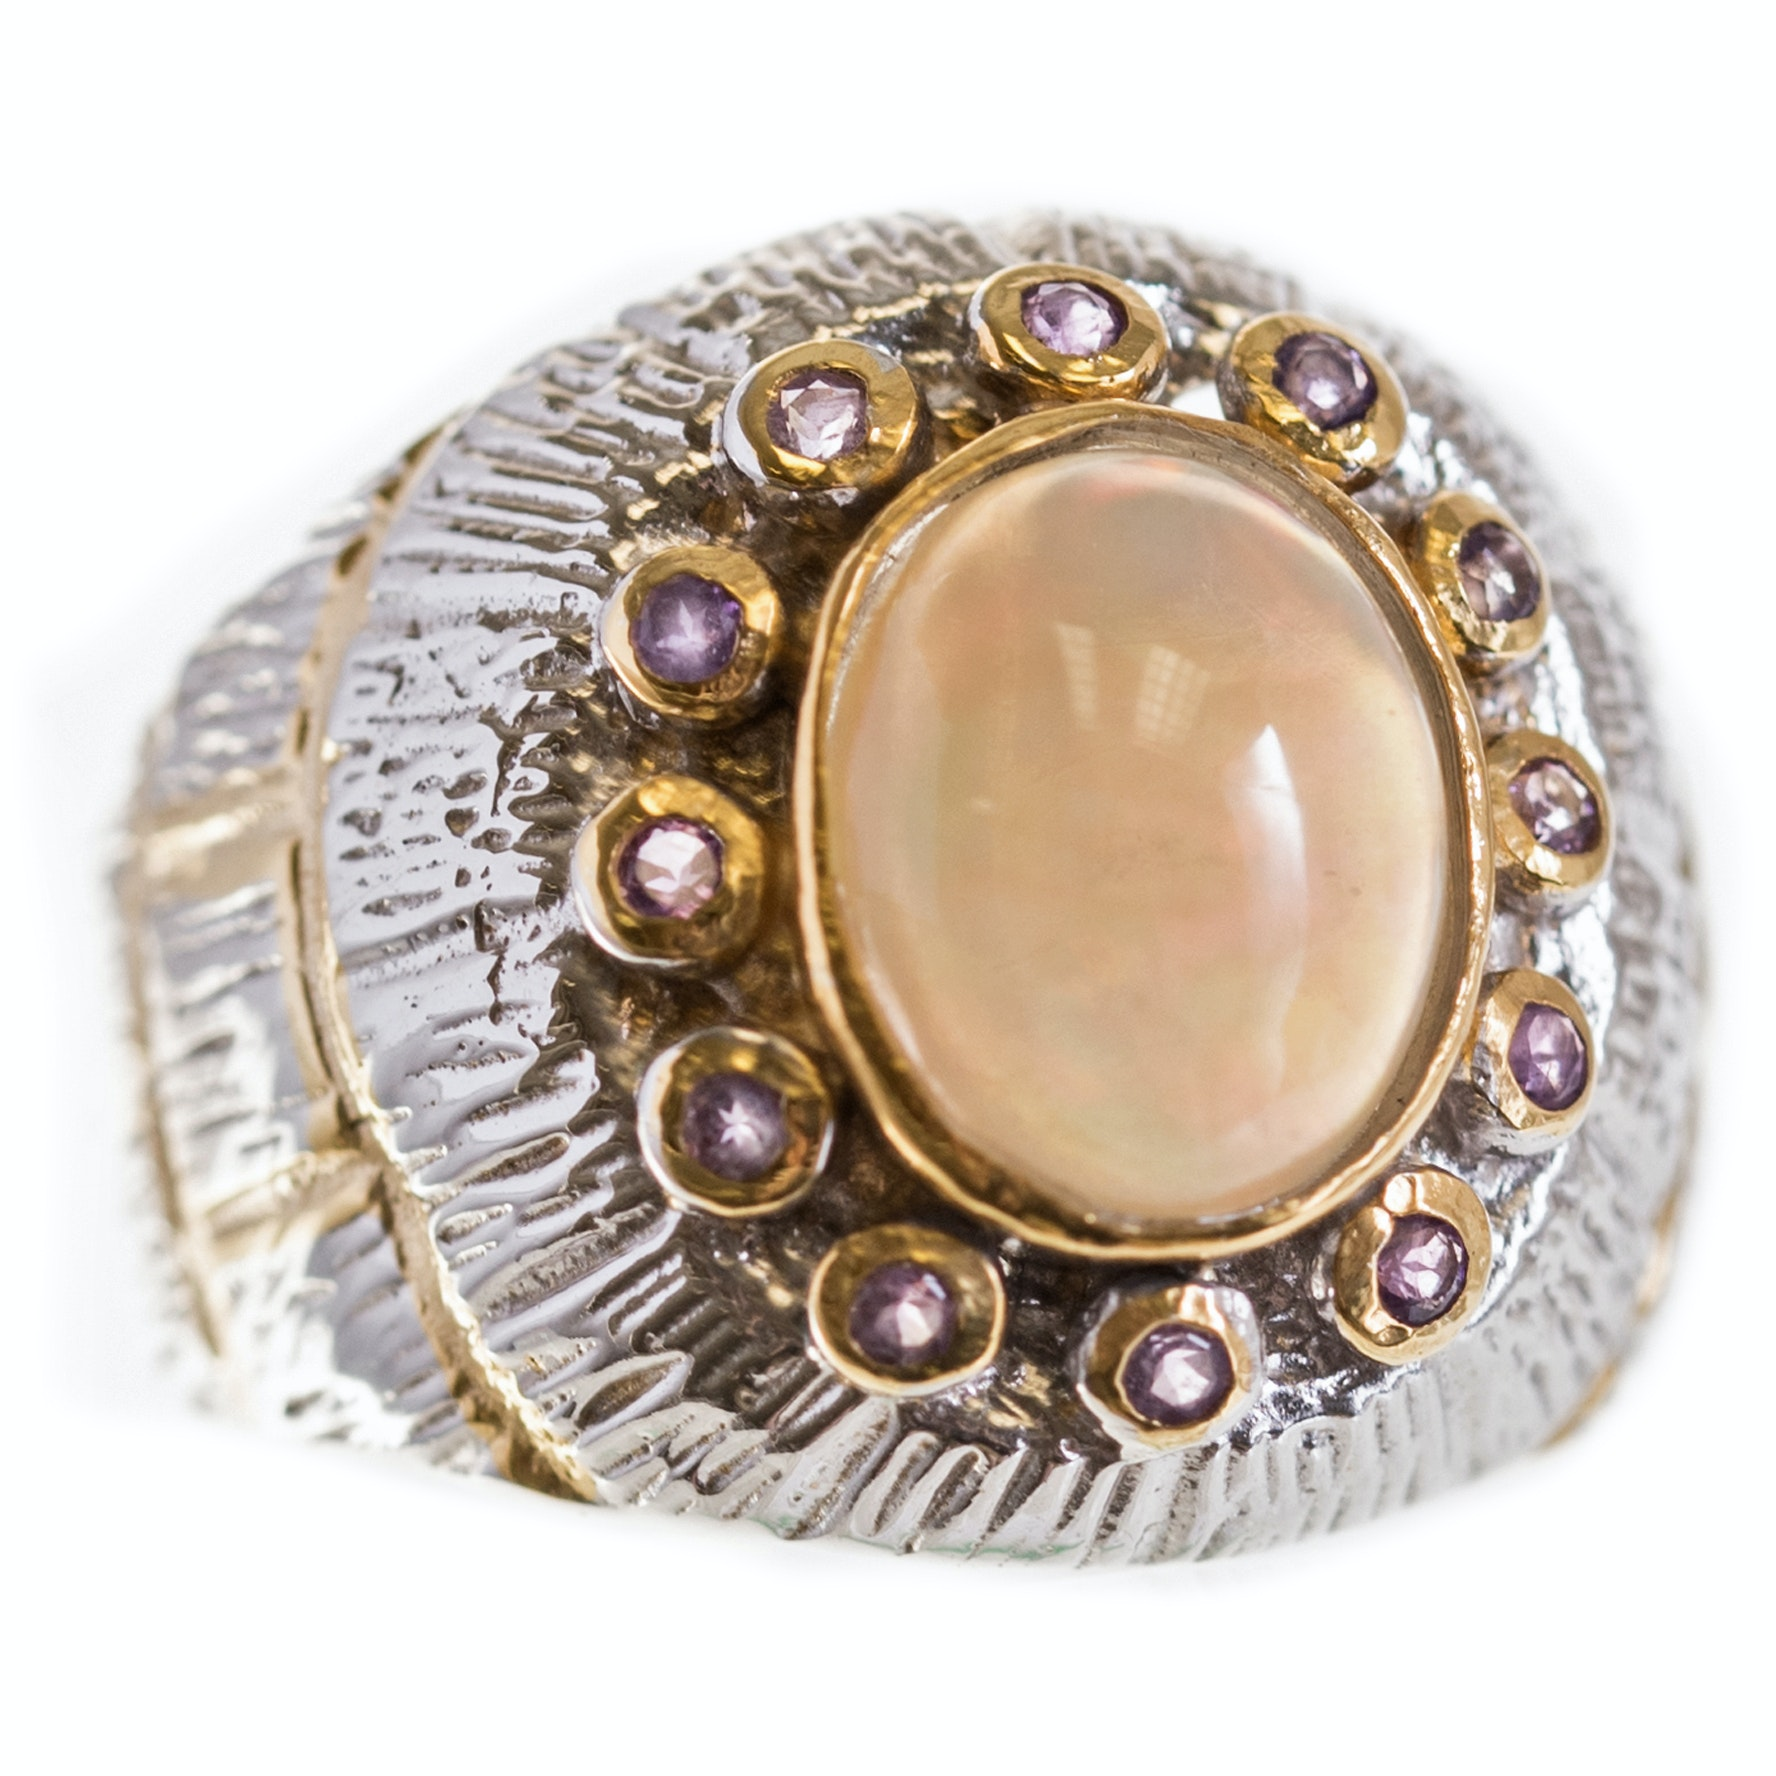 Sterling Silver Textured Opal and Amethyst Ring with Gold Wash Accents